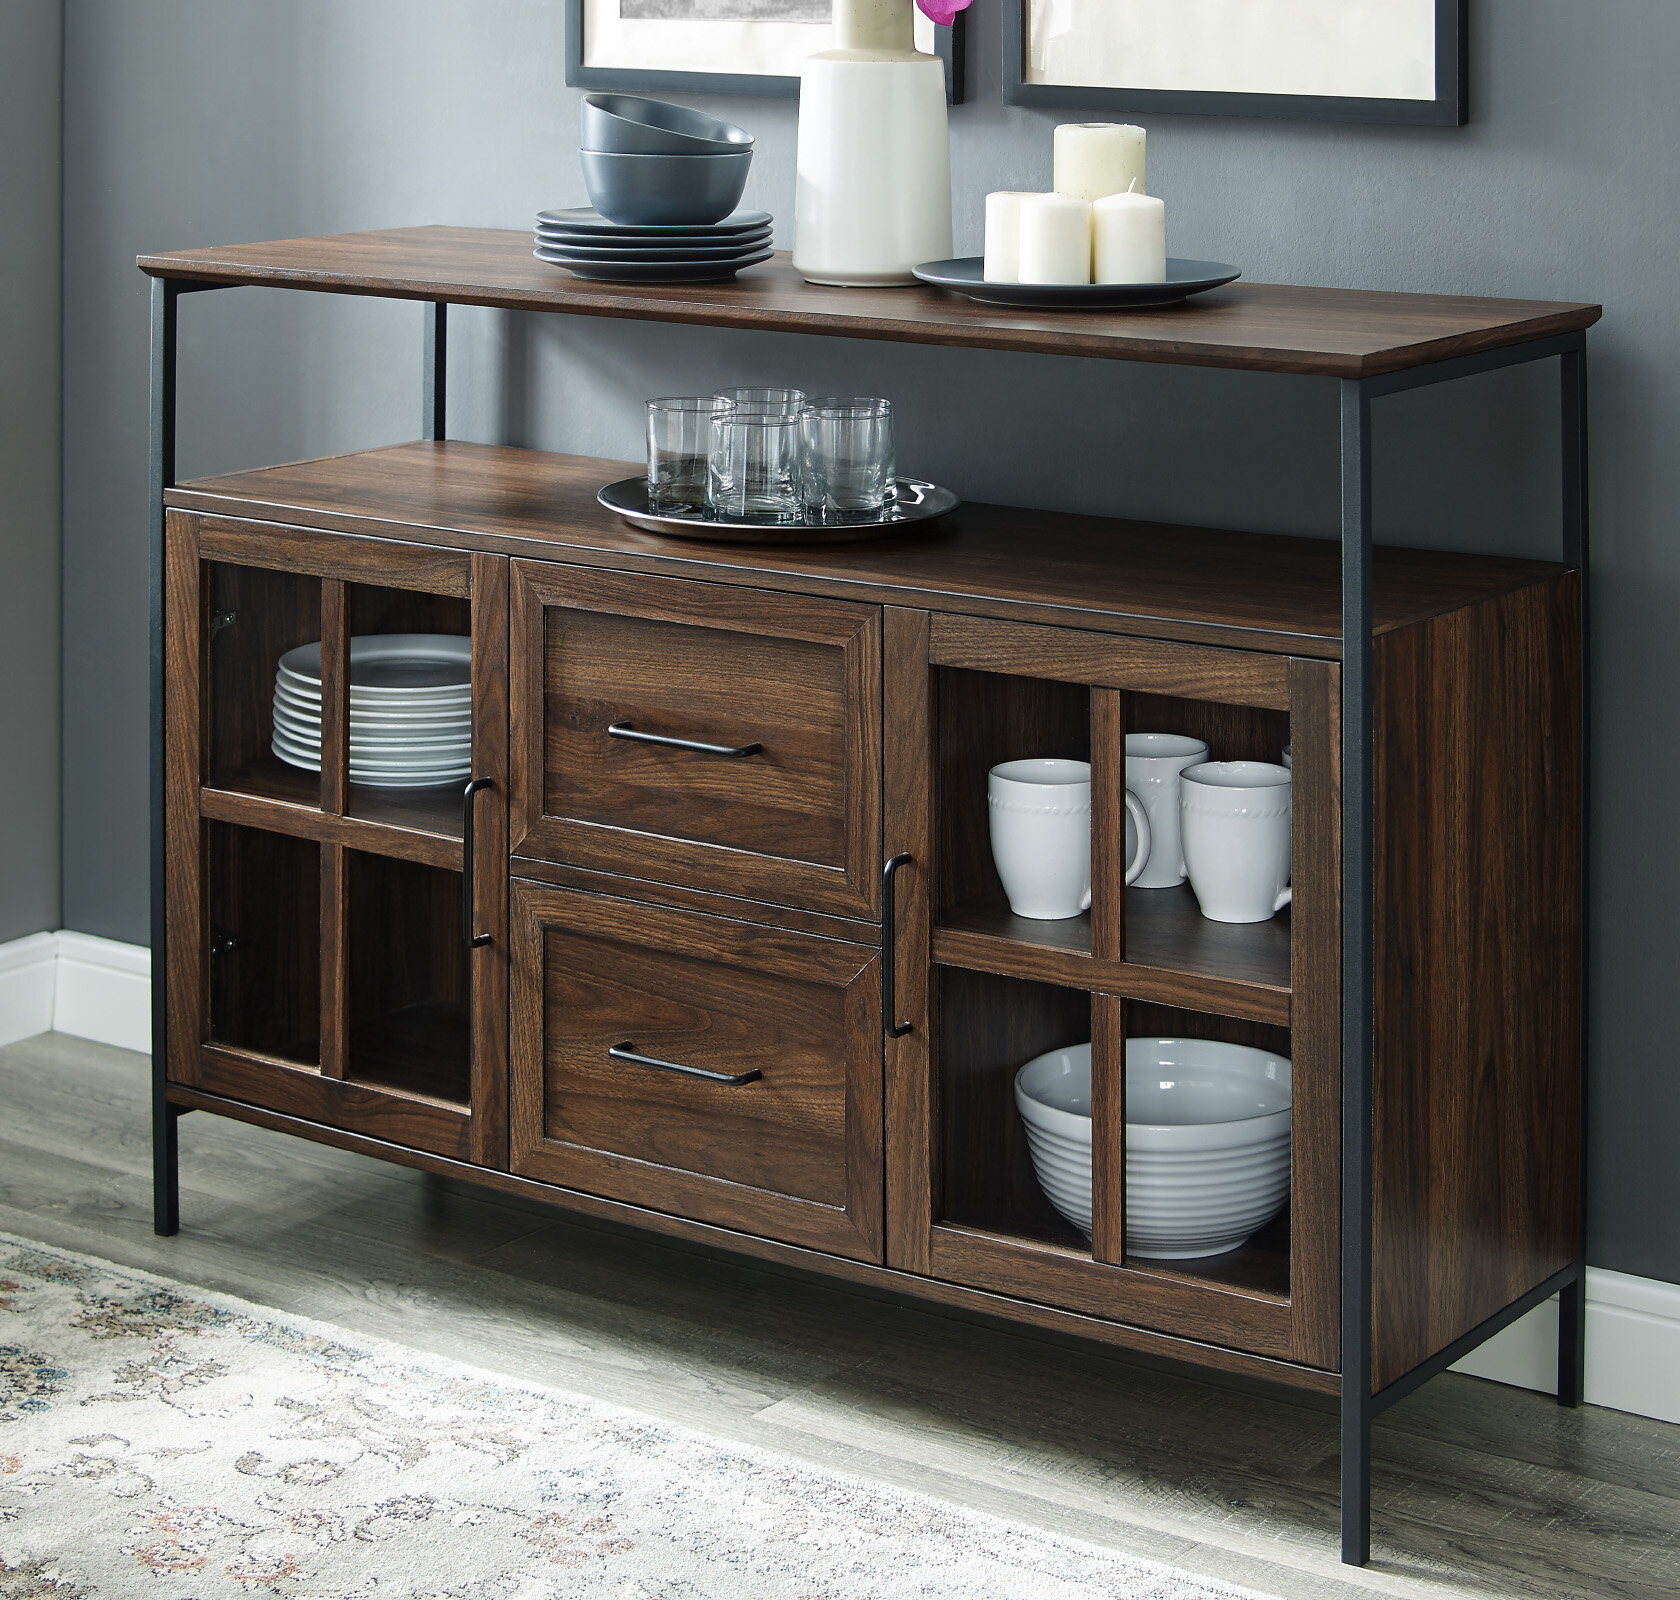 Narrow Buffet Table | Wayfair Pertaining To Contemporary Wooden Buffets With One Side Door Storage Cabinets And Two Drawers (View 10 of 30)